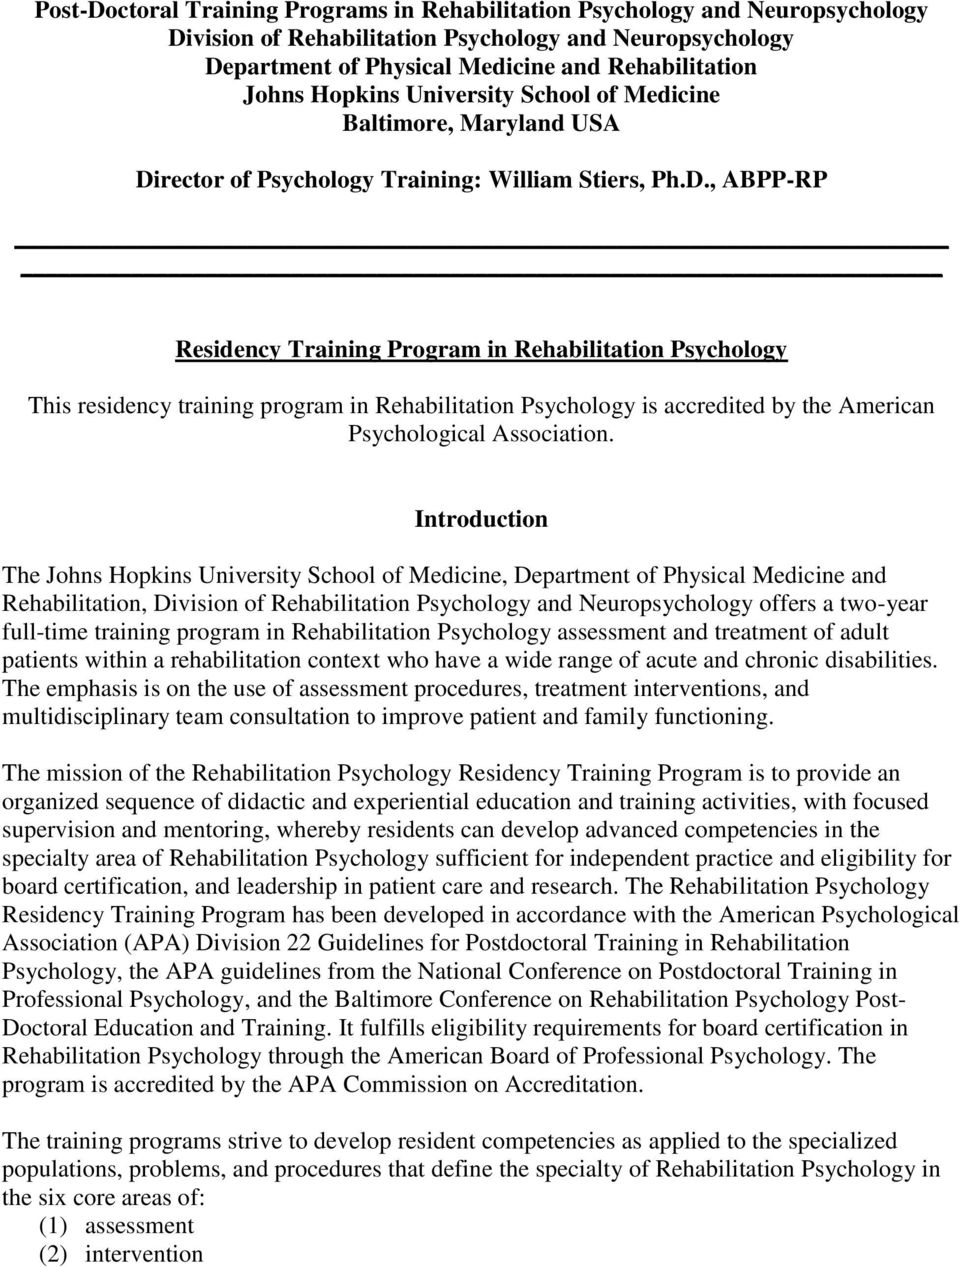 rector of Psychology Training: William Stiers, Ph.D.